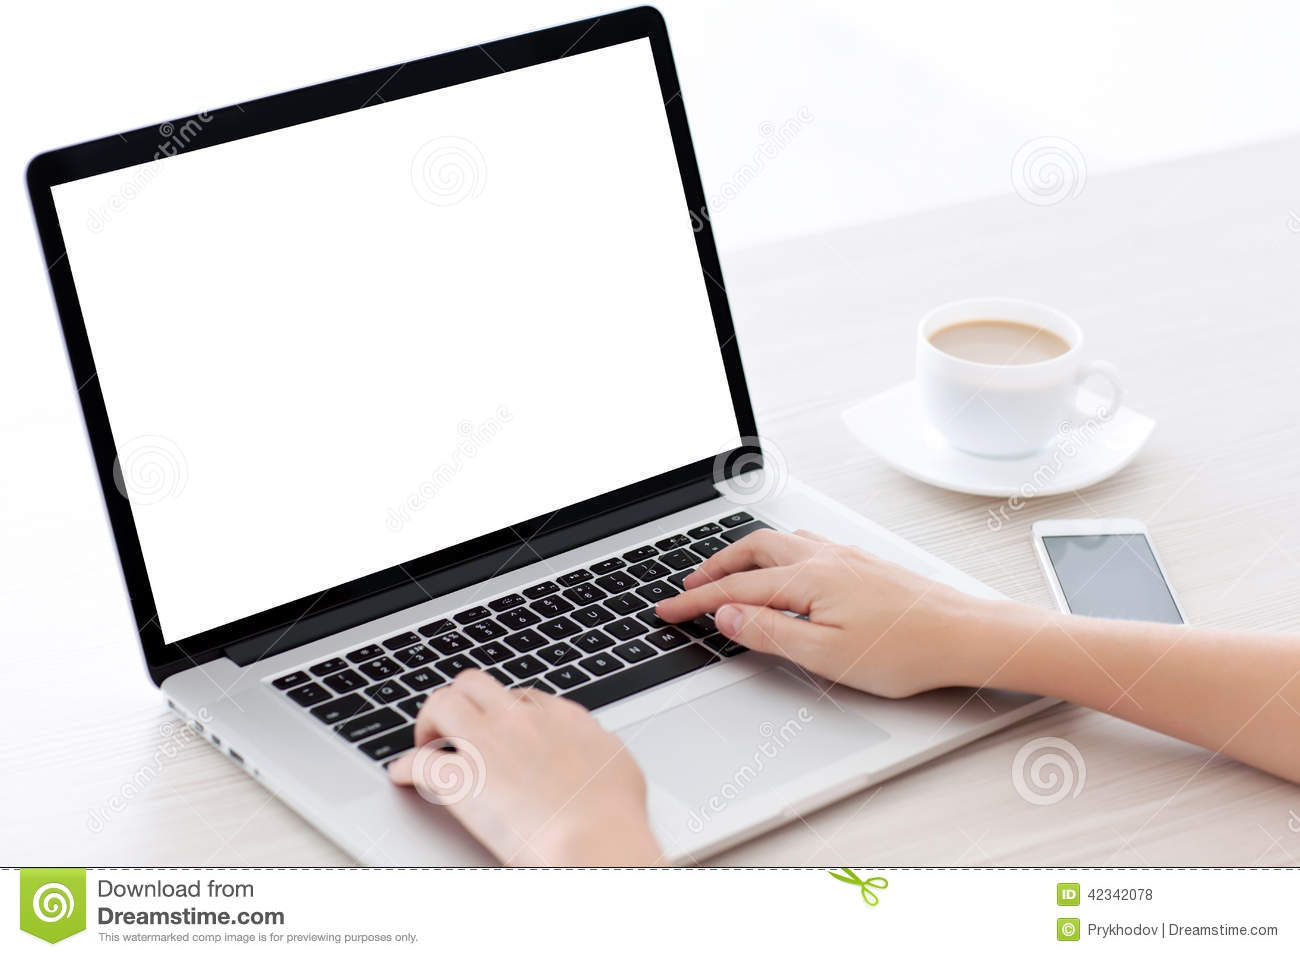 Female hands typing on a laptop keyboard with screen in